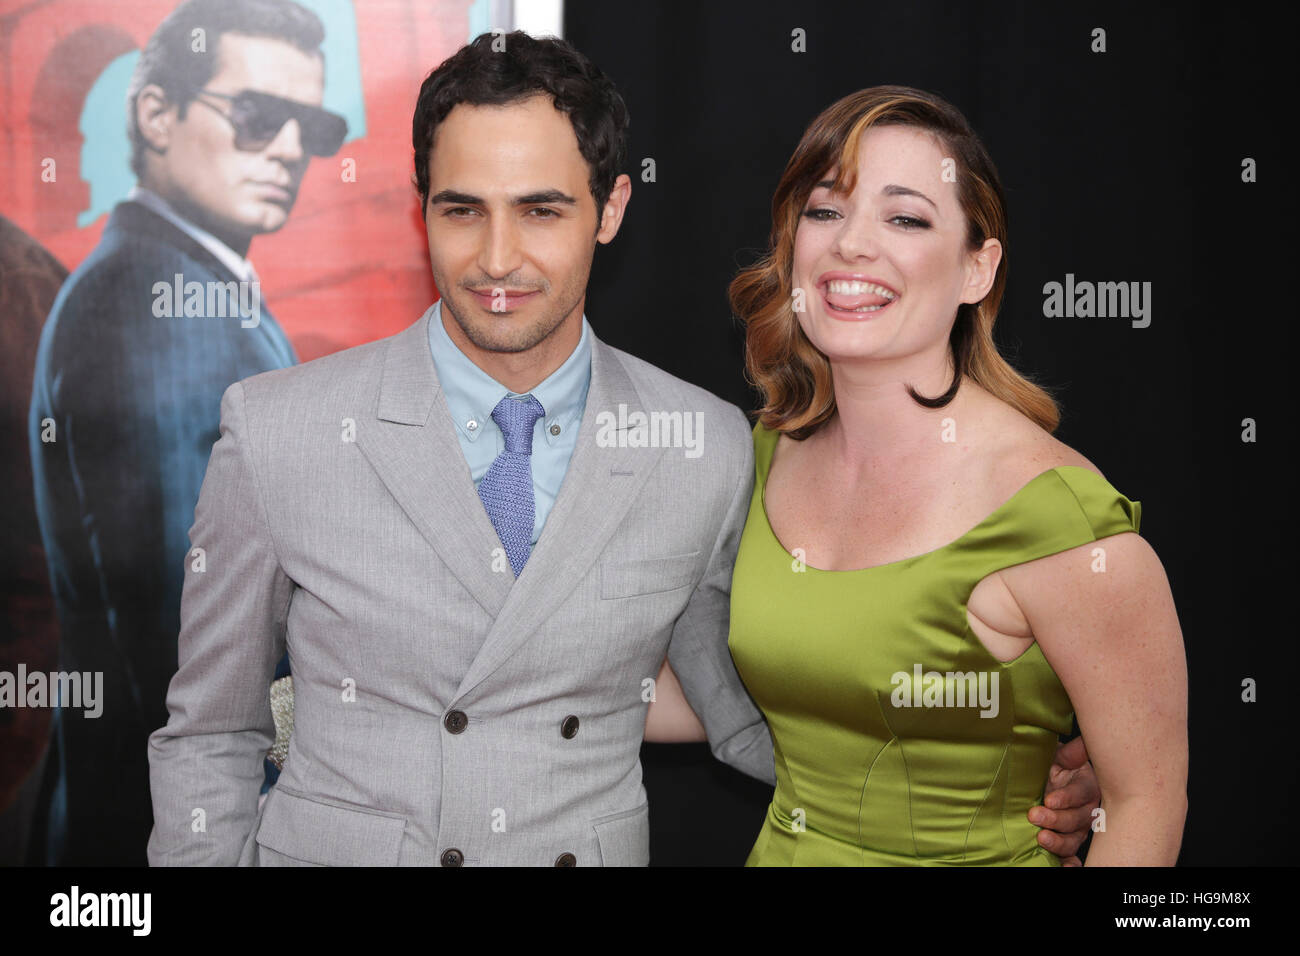 Laura Michelle Kelly, Zac Posen arrives at The Man From U.N.C.L.E premiere at the Zigfield Theater in NYC. - Stock Image